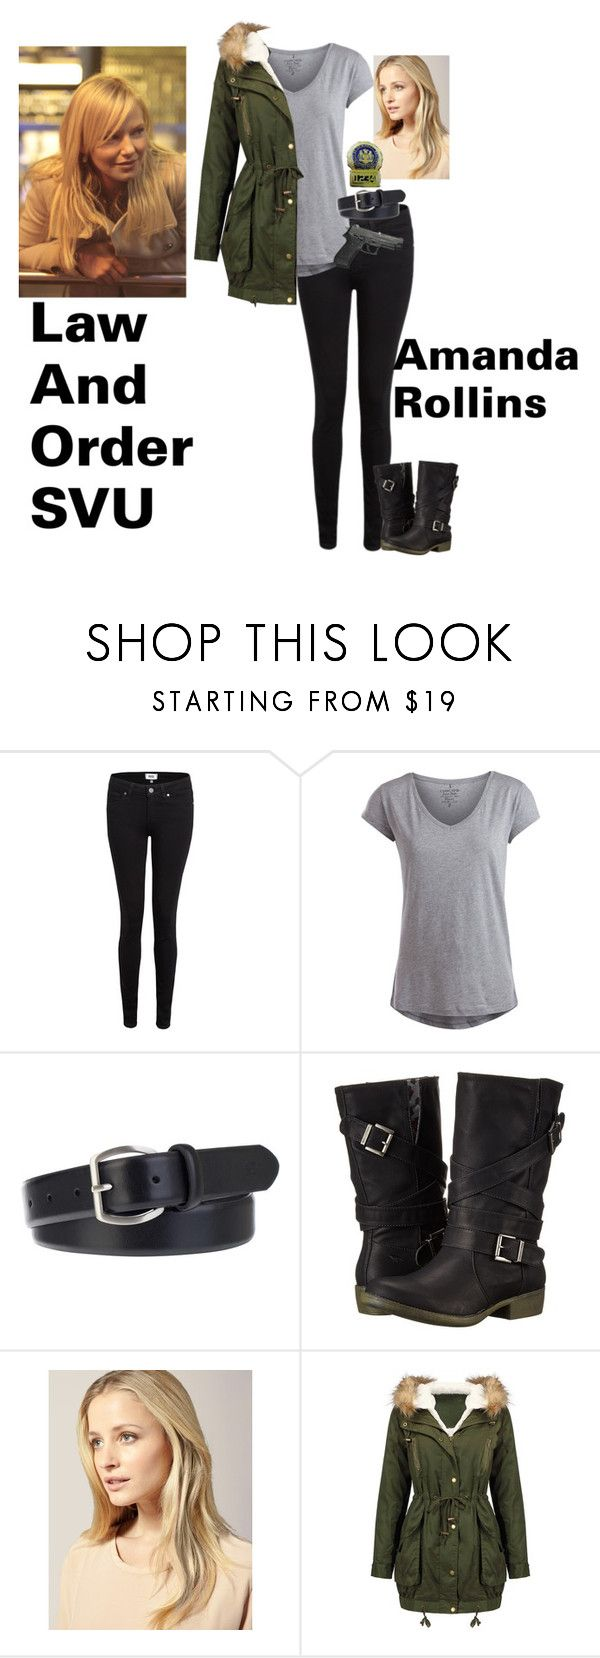 """amanda rollins"" by twdcpdgleggielinstead ❤ liked on Polyvore featuring Paige Denim, Pieces, Ben Sherman, Rocket Dog, Hershesons, lawandordersvu and amandarollins"